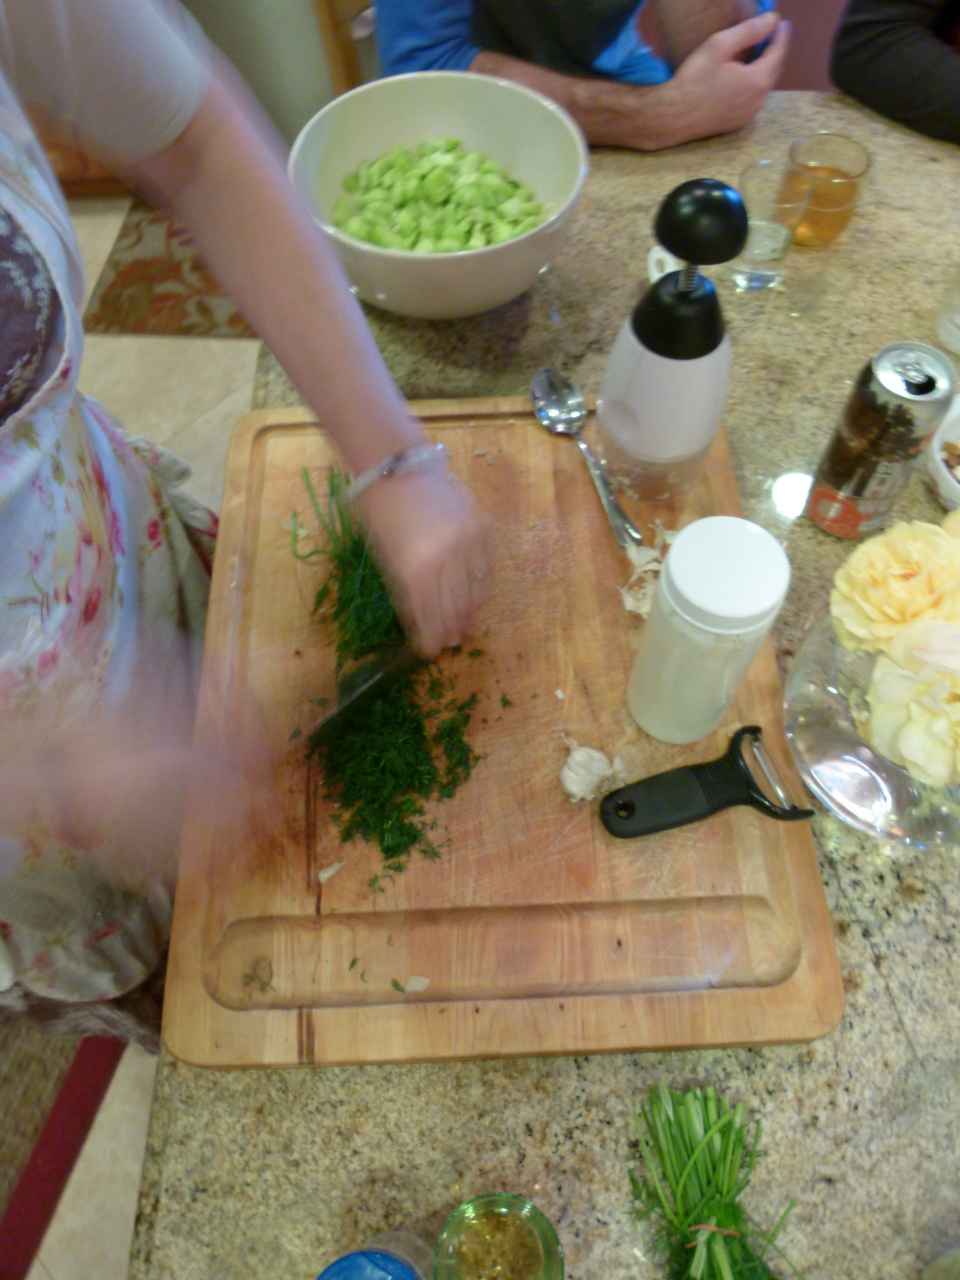 nourished kitchen kefir cucumber salad recipe ingredients in action - Nourished Kitchen